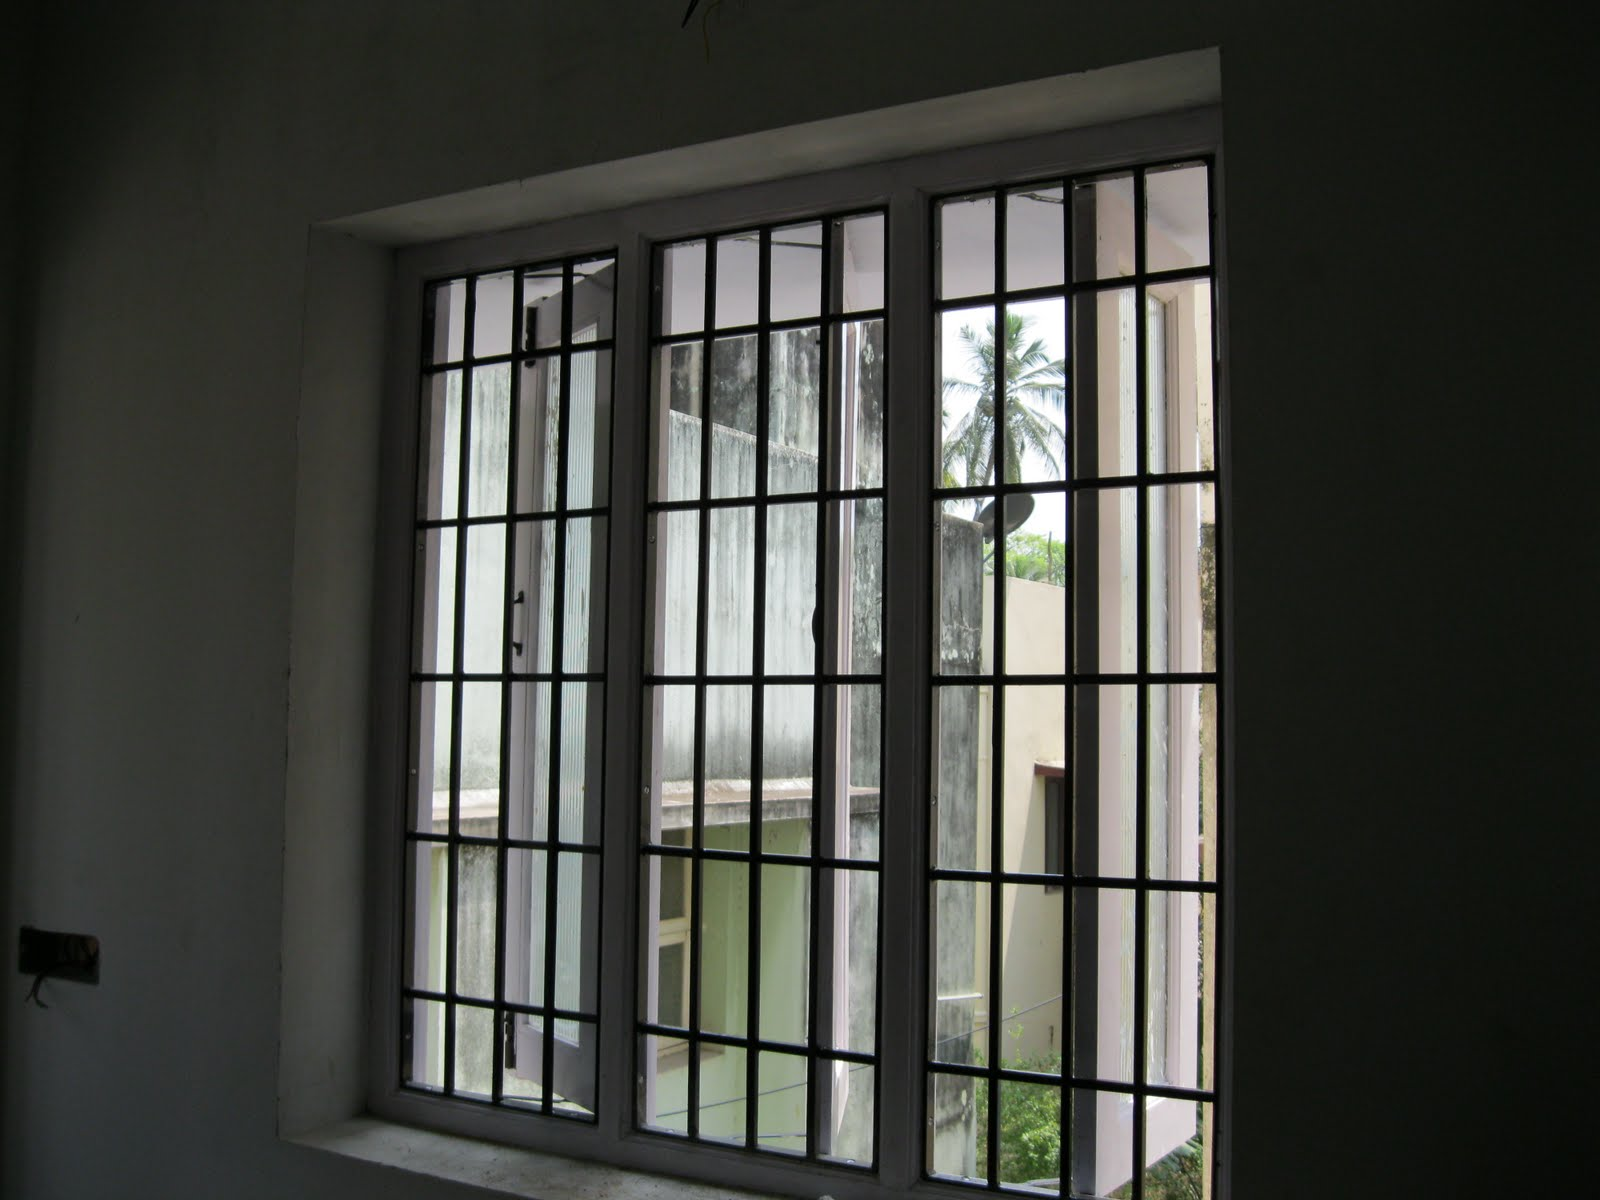 Window grill design photos in kerala joy studio design gallery best design - Window grills design pictures ...